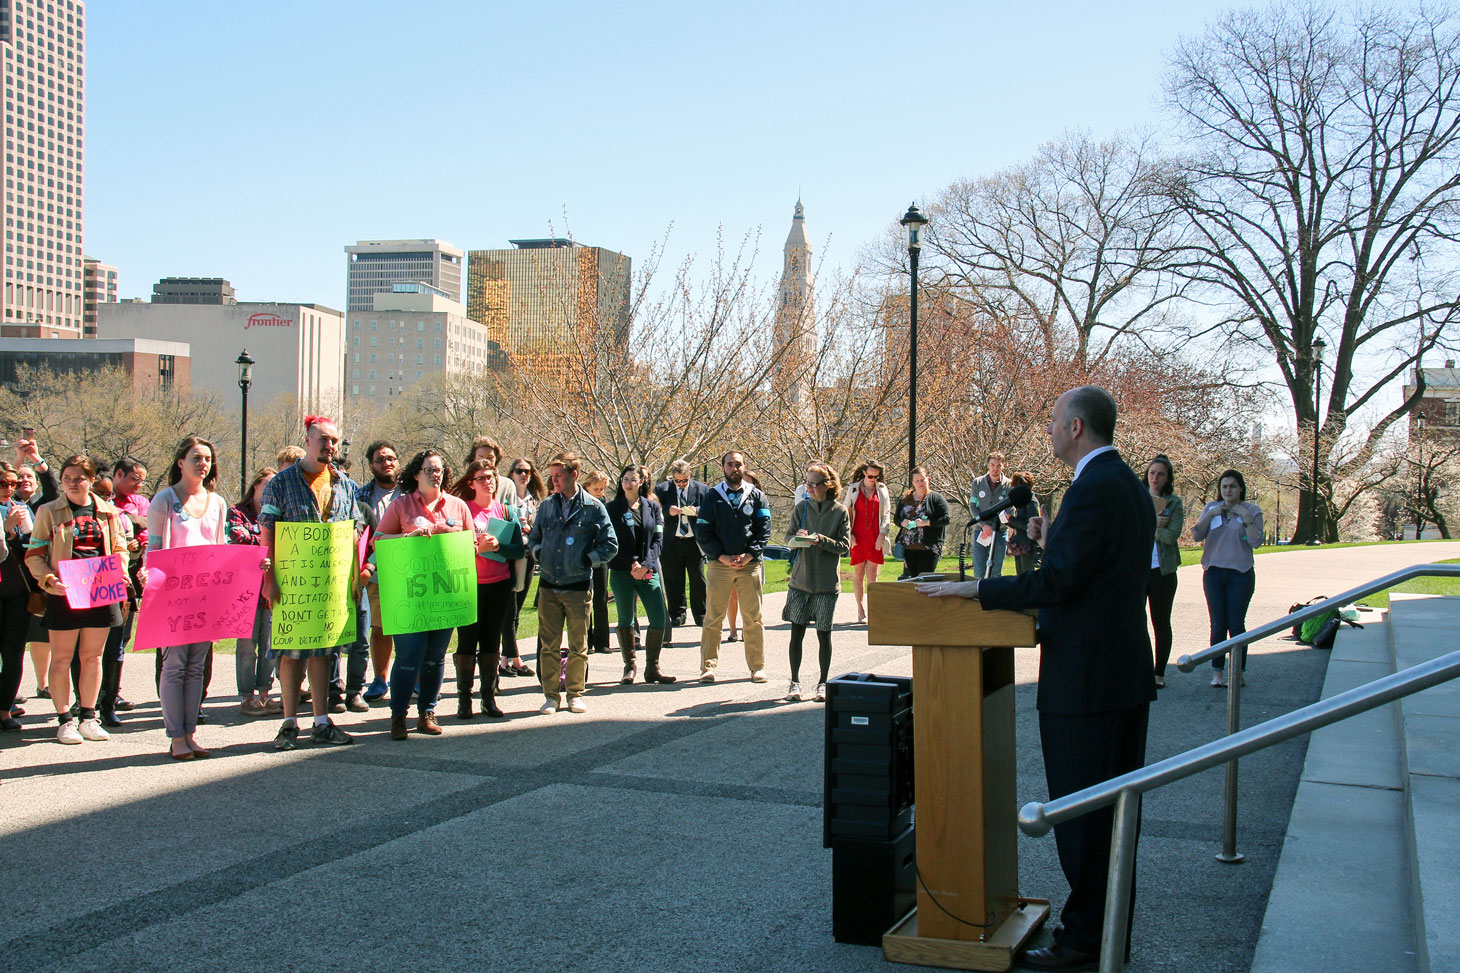 Rep. Haddad Speaks at a Rally for Affirmative Consent